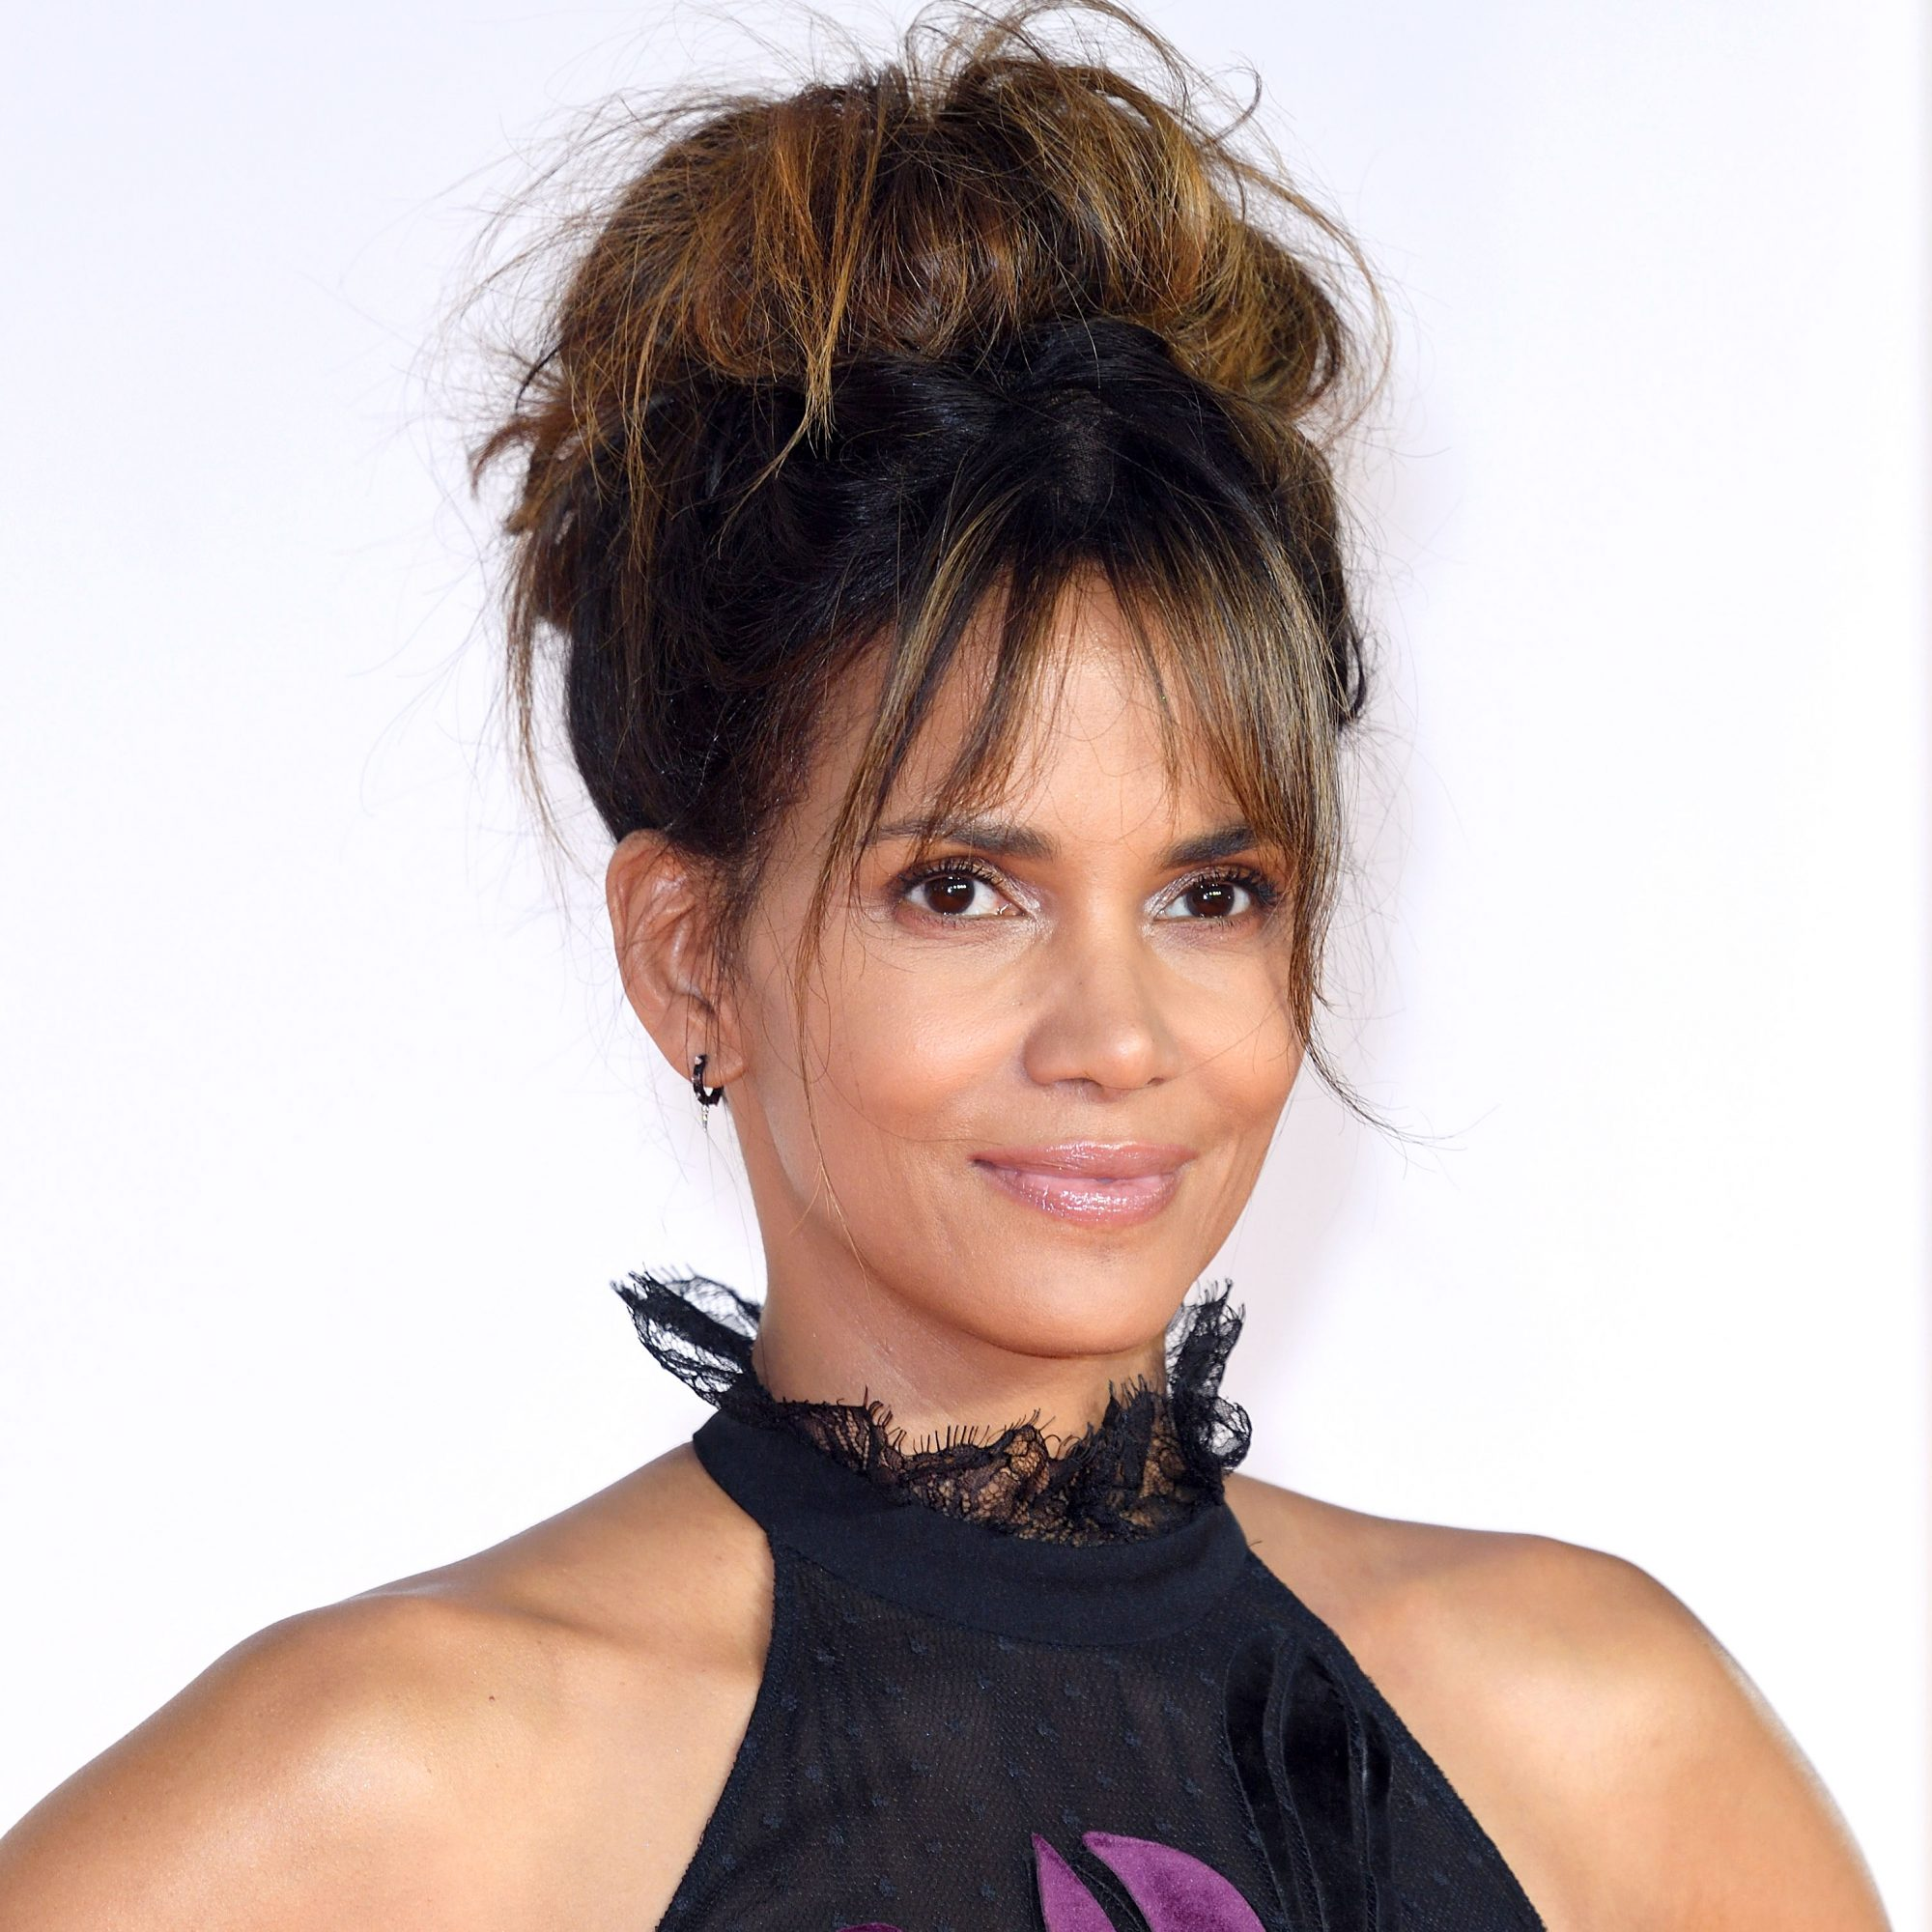 d227a8bd4 Halle Berry Goes Topless to Reveal Her New Mermaid-Inspired Tattoo